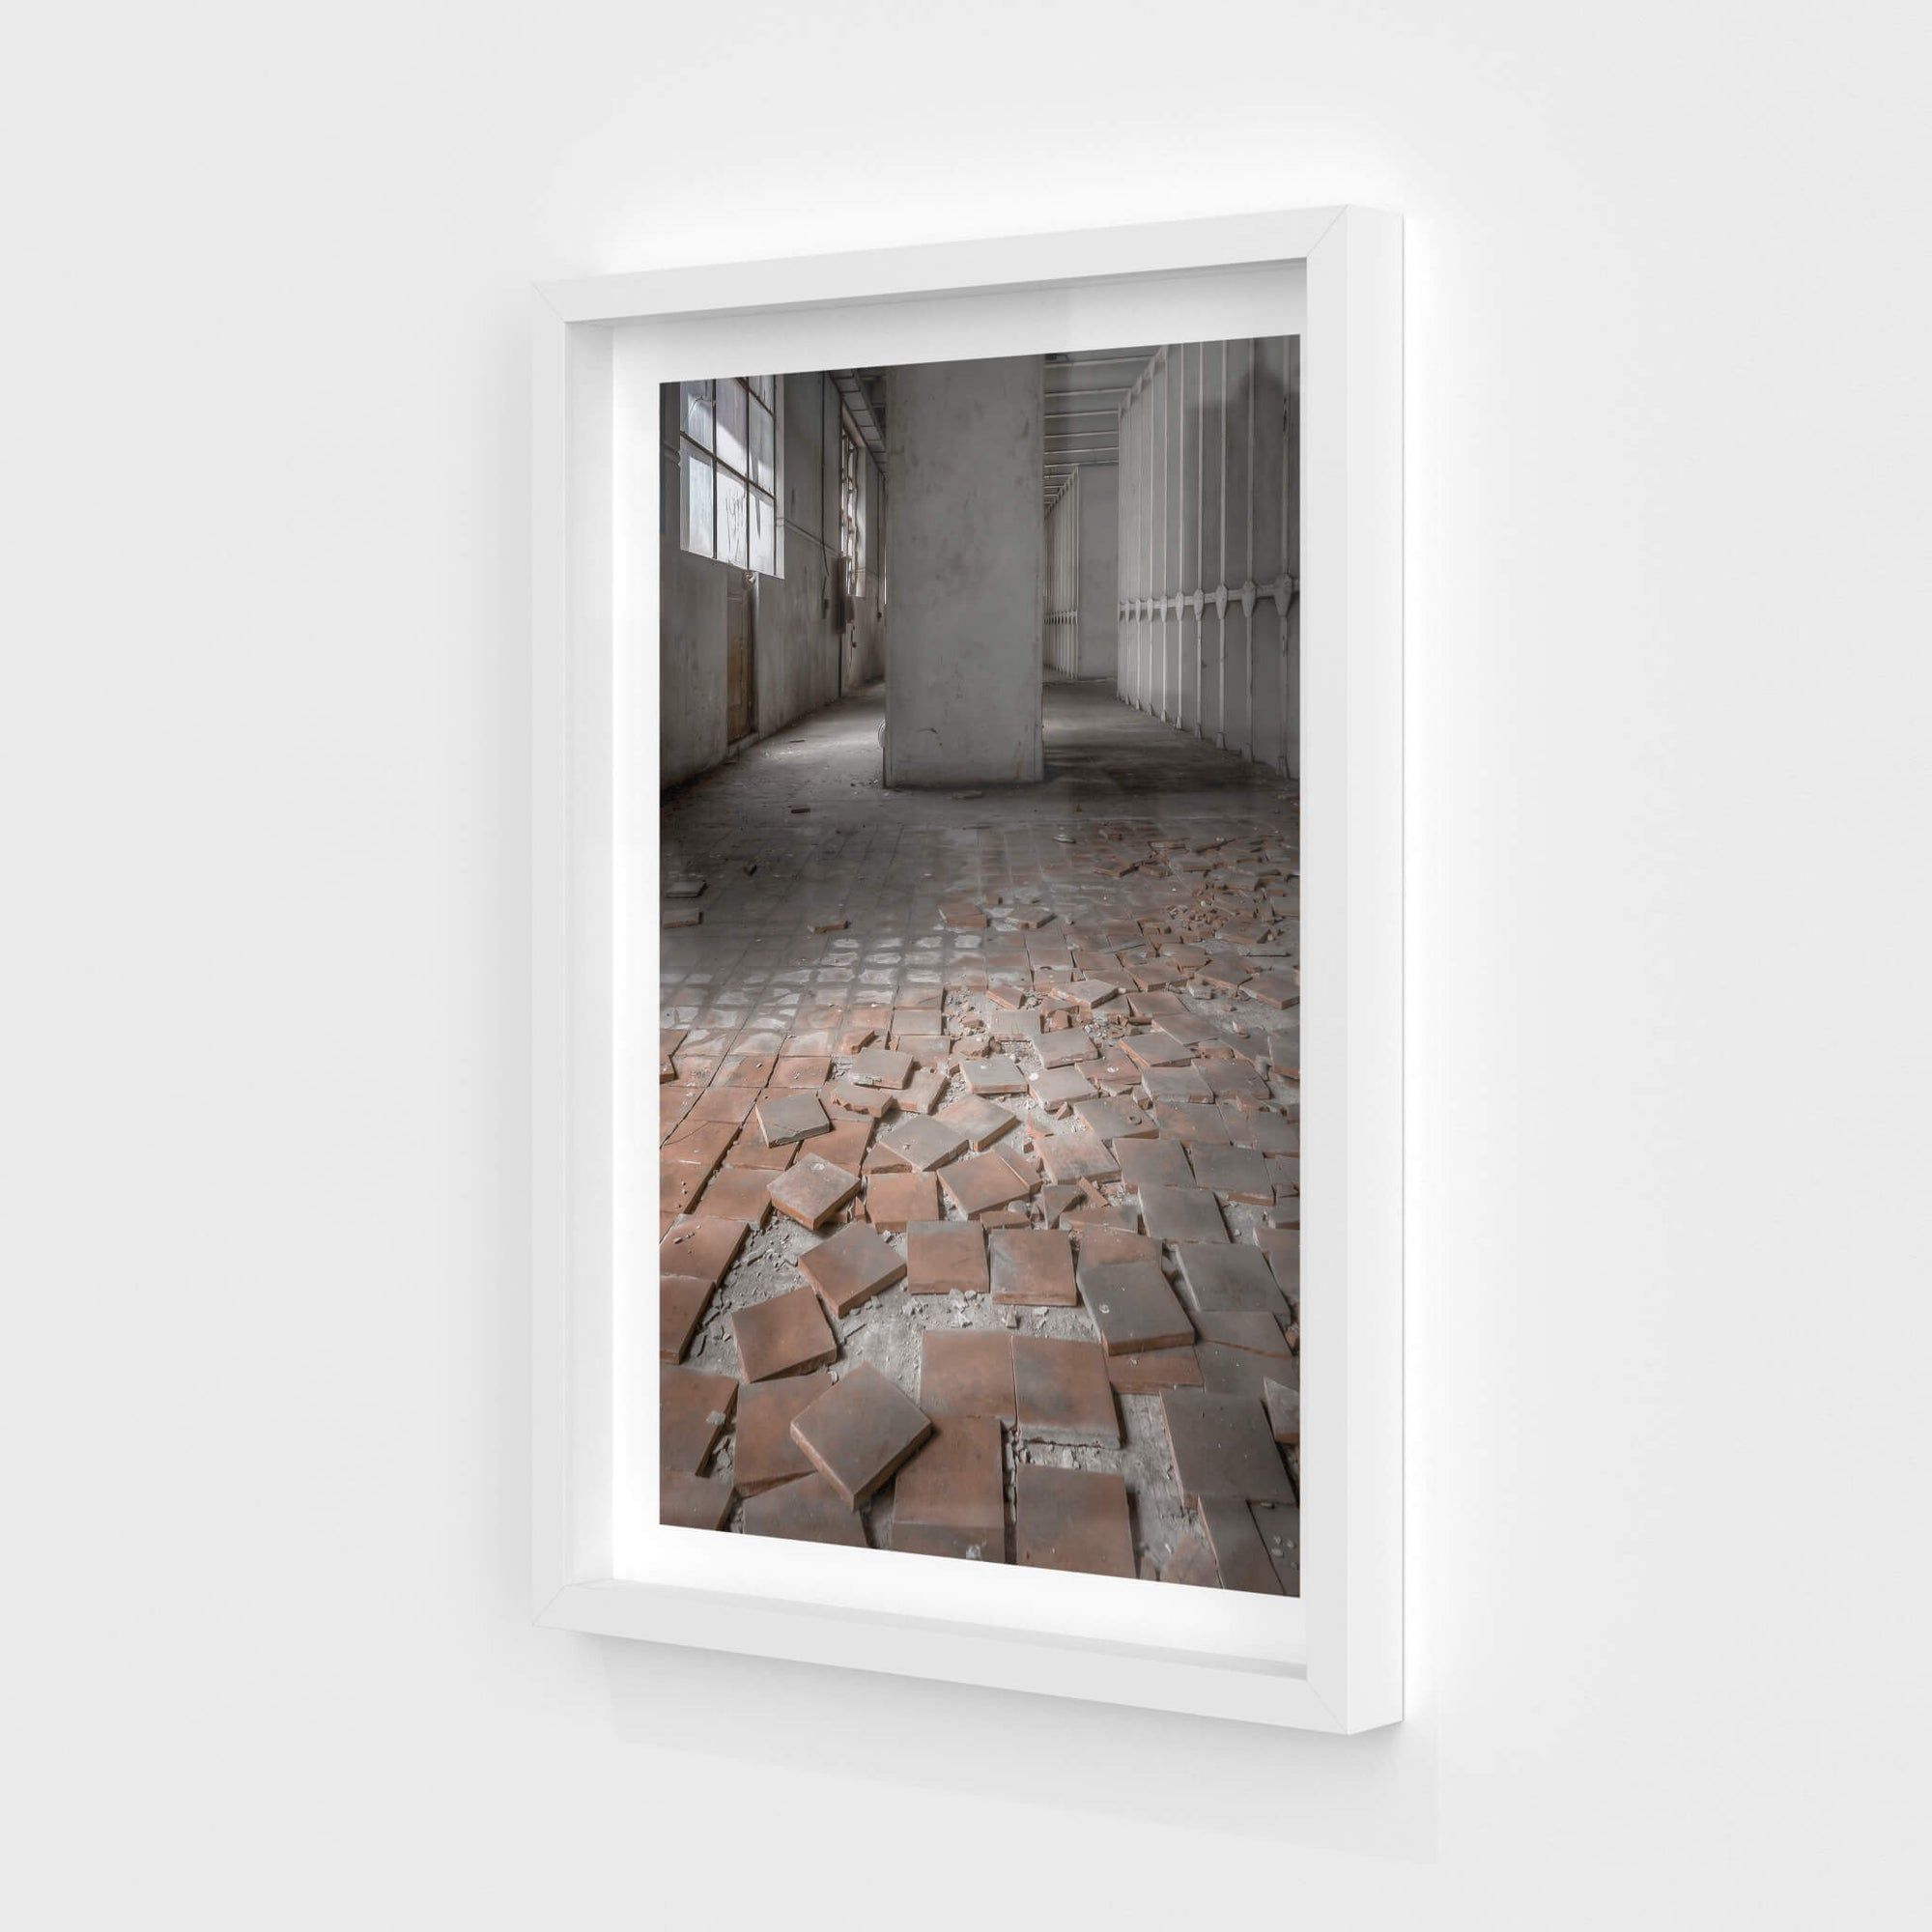 Reactor Room Tiles | White Bay Power Station Fine Art Print - Lost Collective Shop